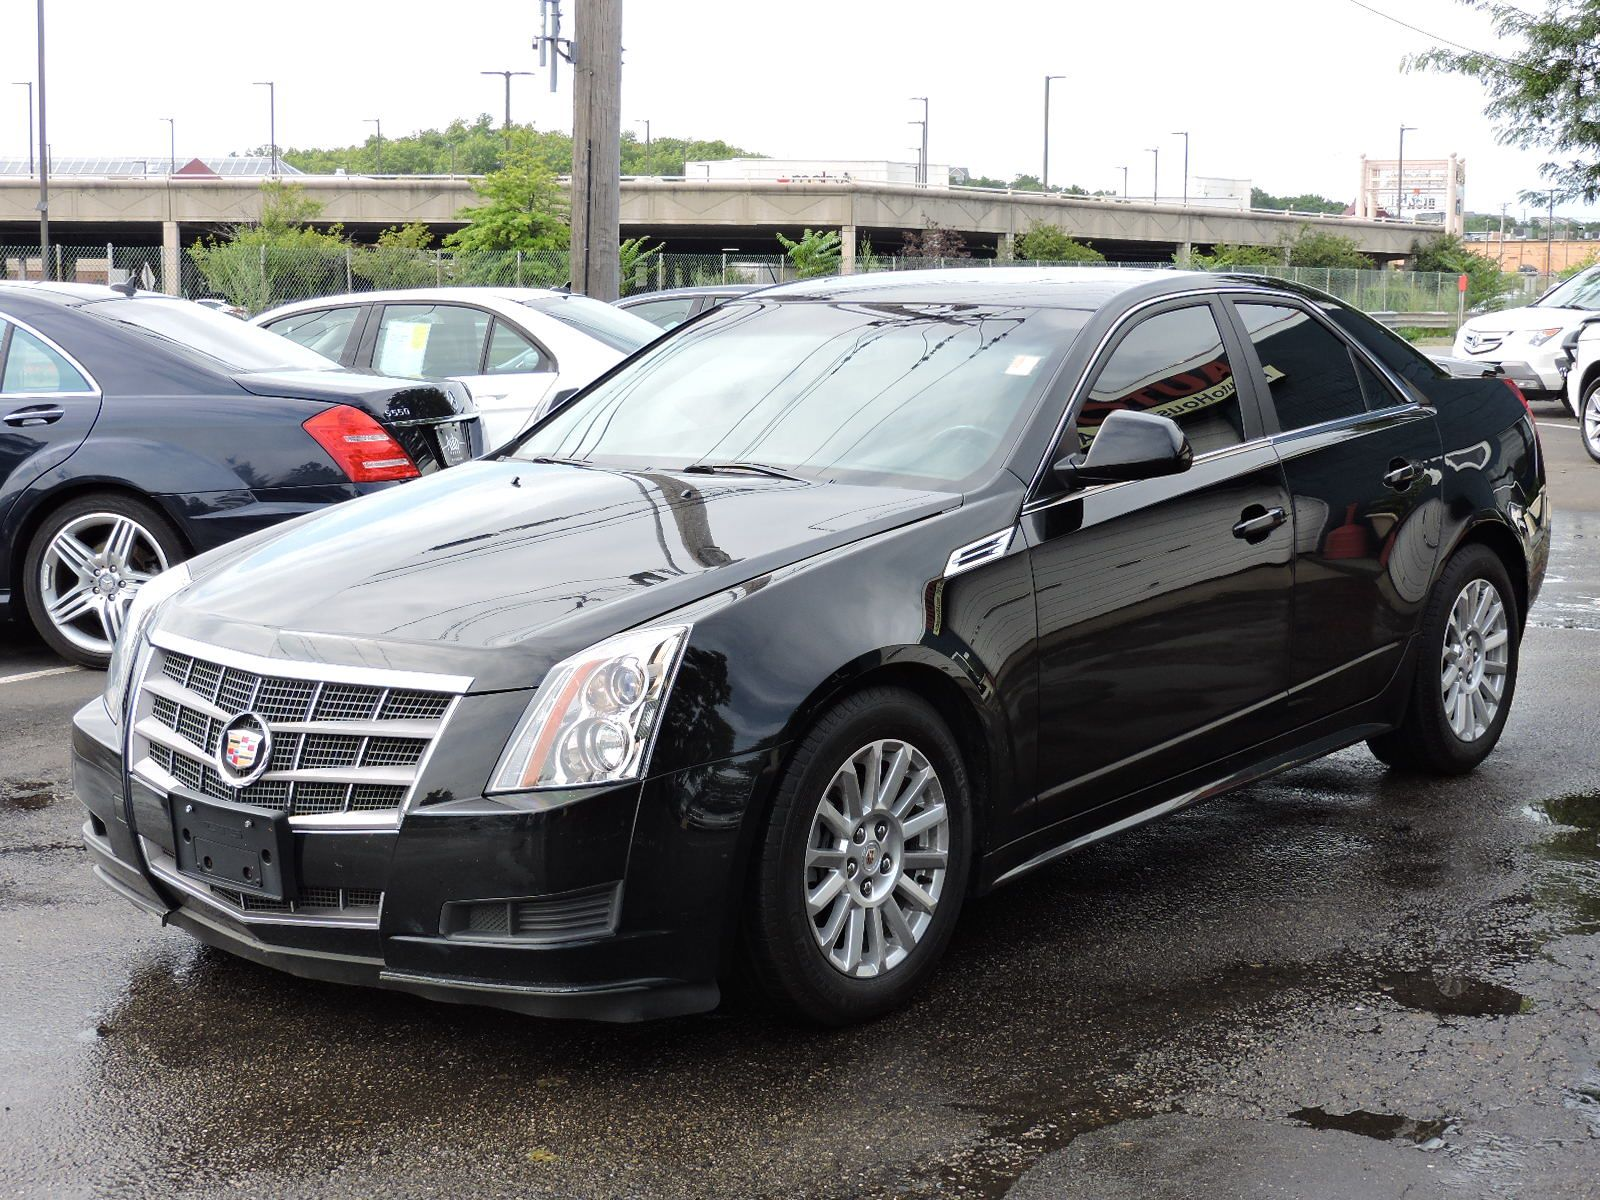 2010 Cadillac CTS Sedan - All Wheel Drive